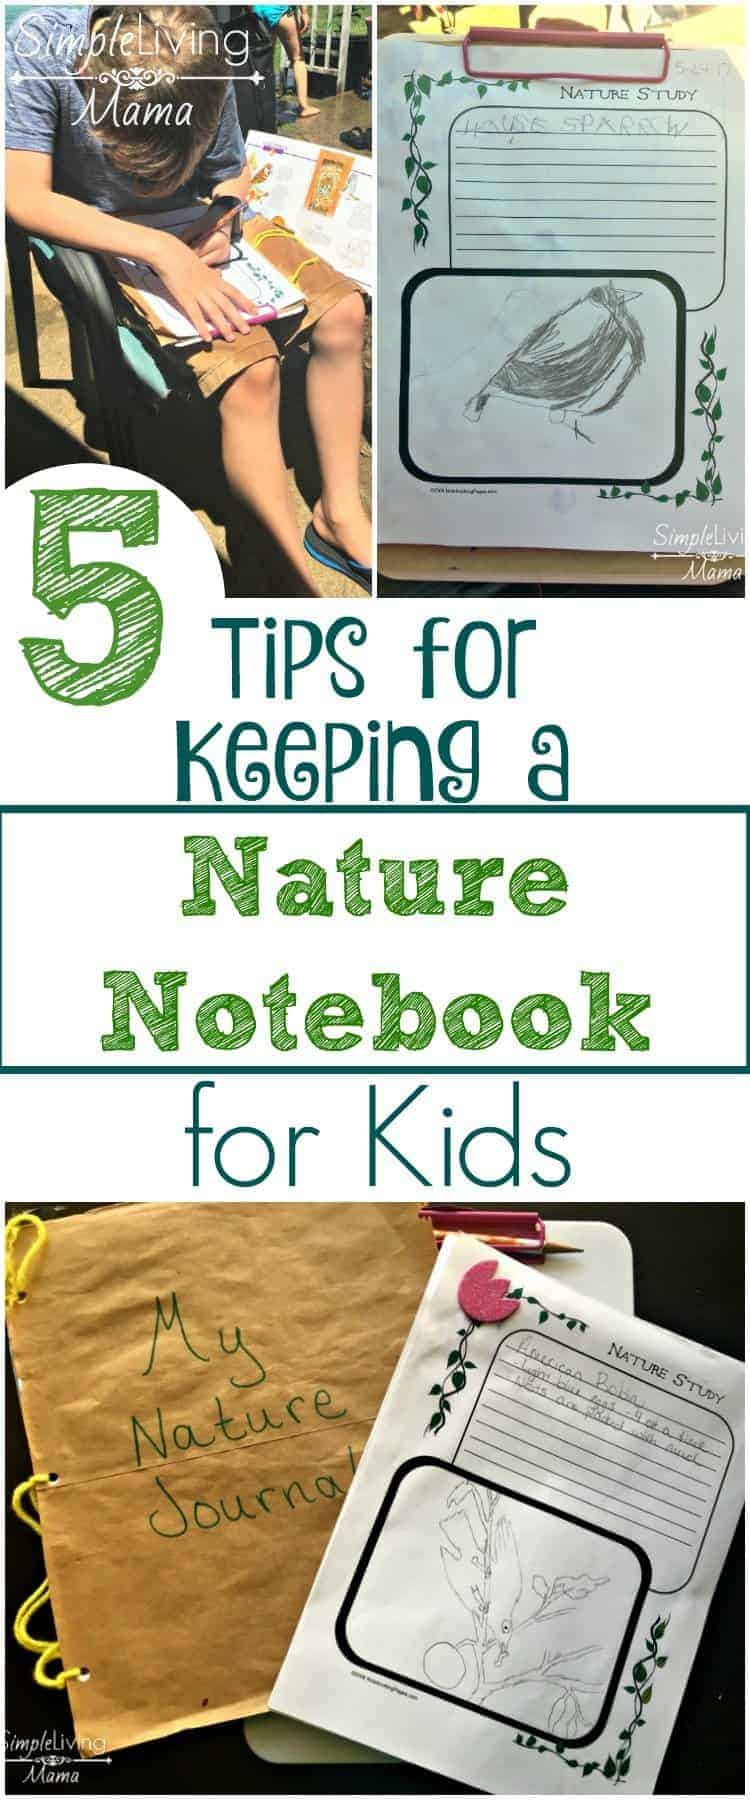 5 Tips for Keeping a Nature Journal for Kids